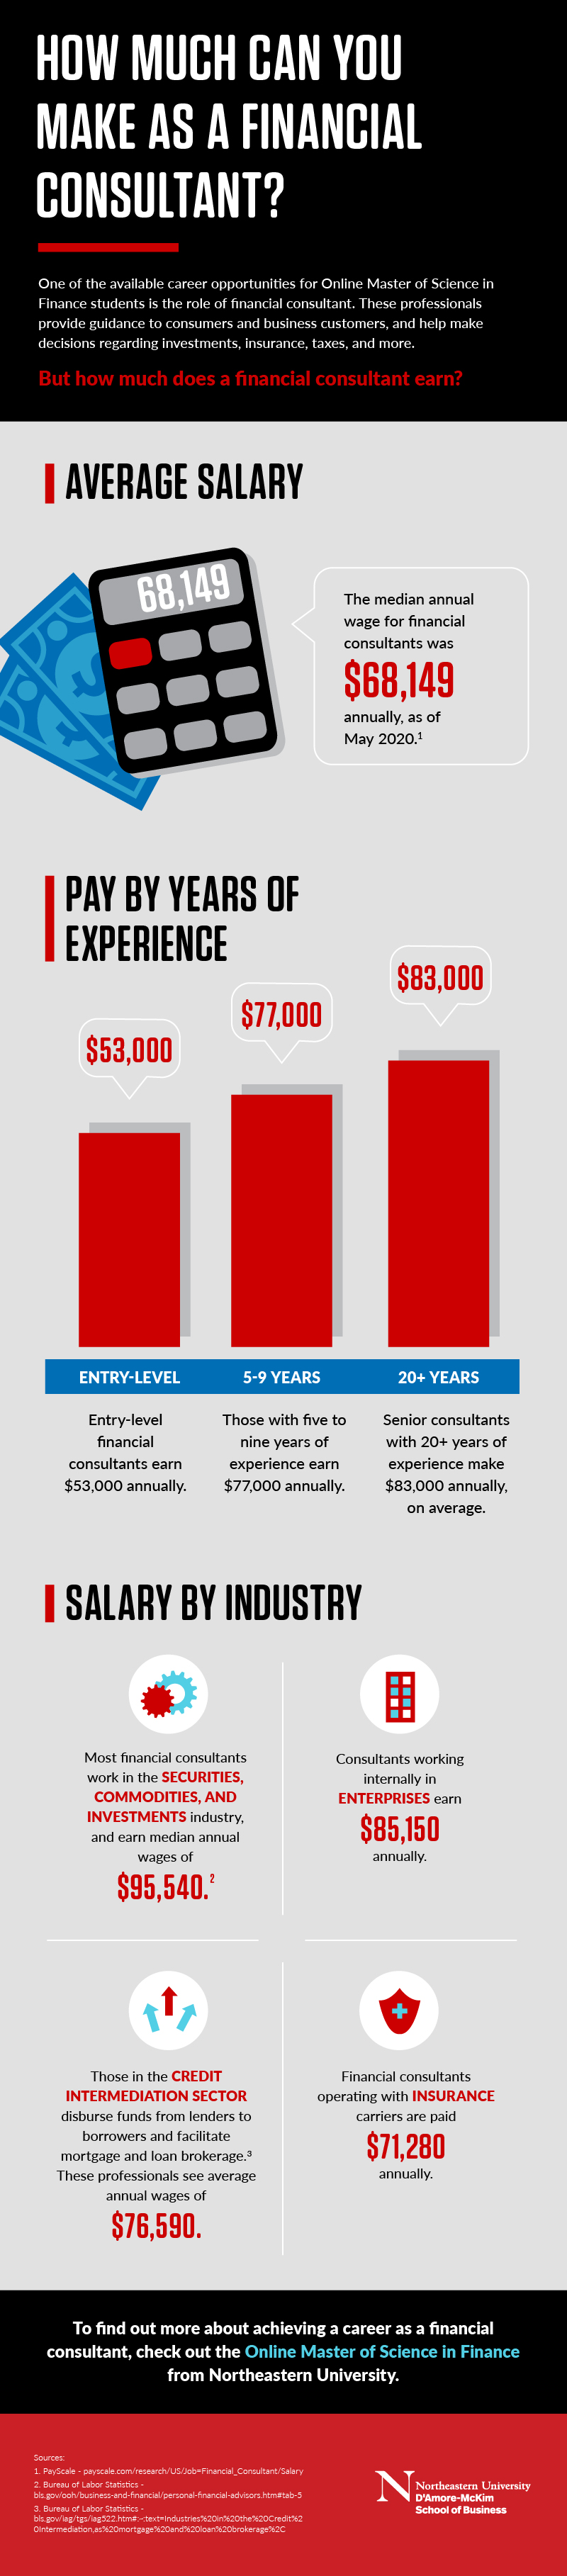 infographic on financial consultant salary